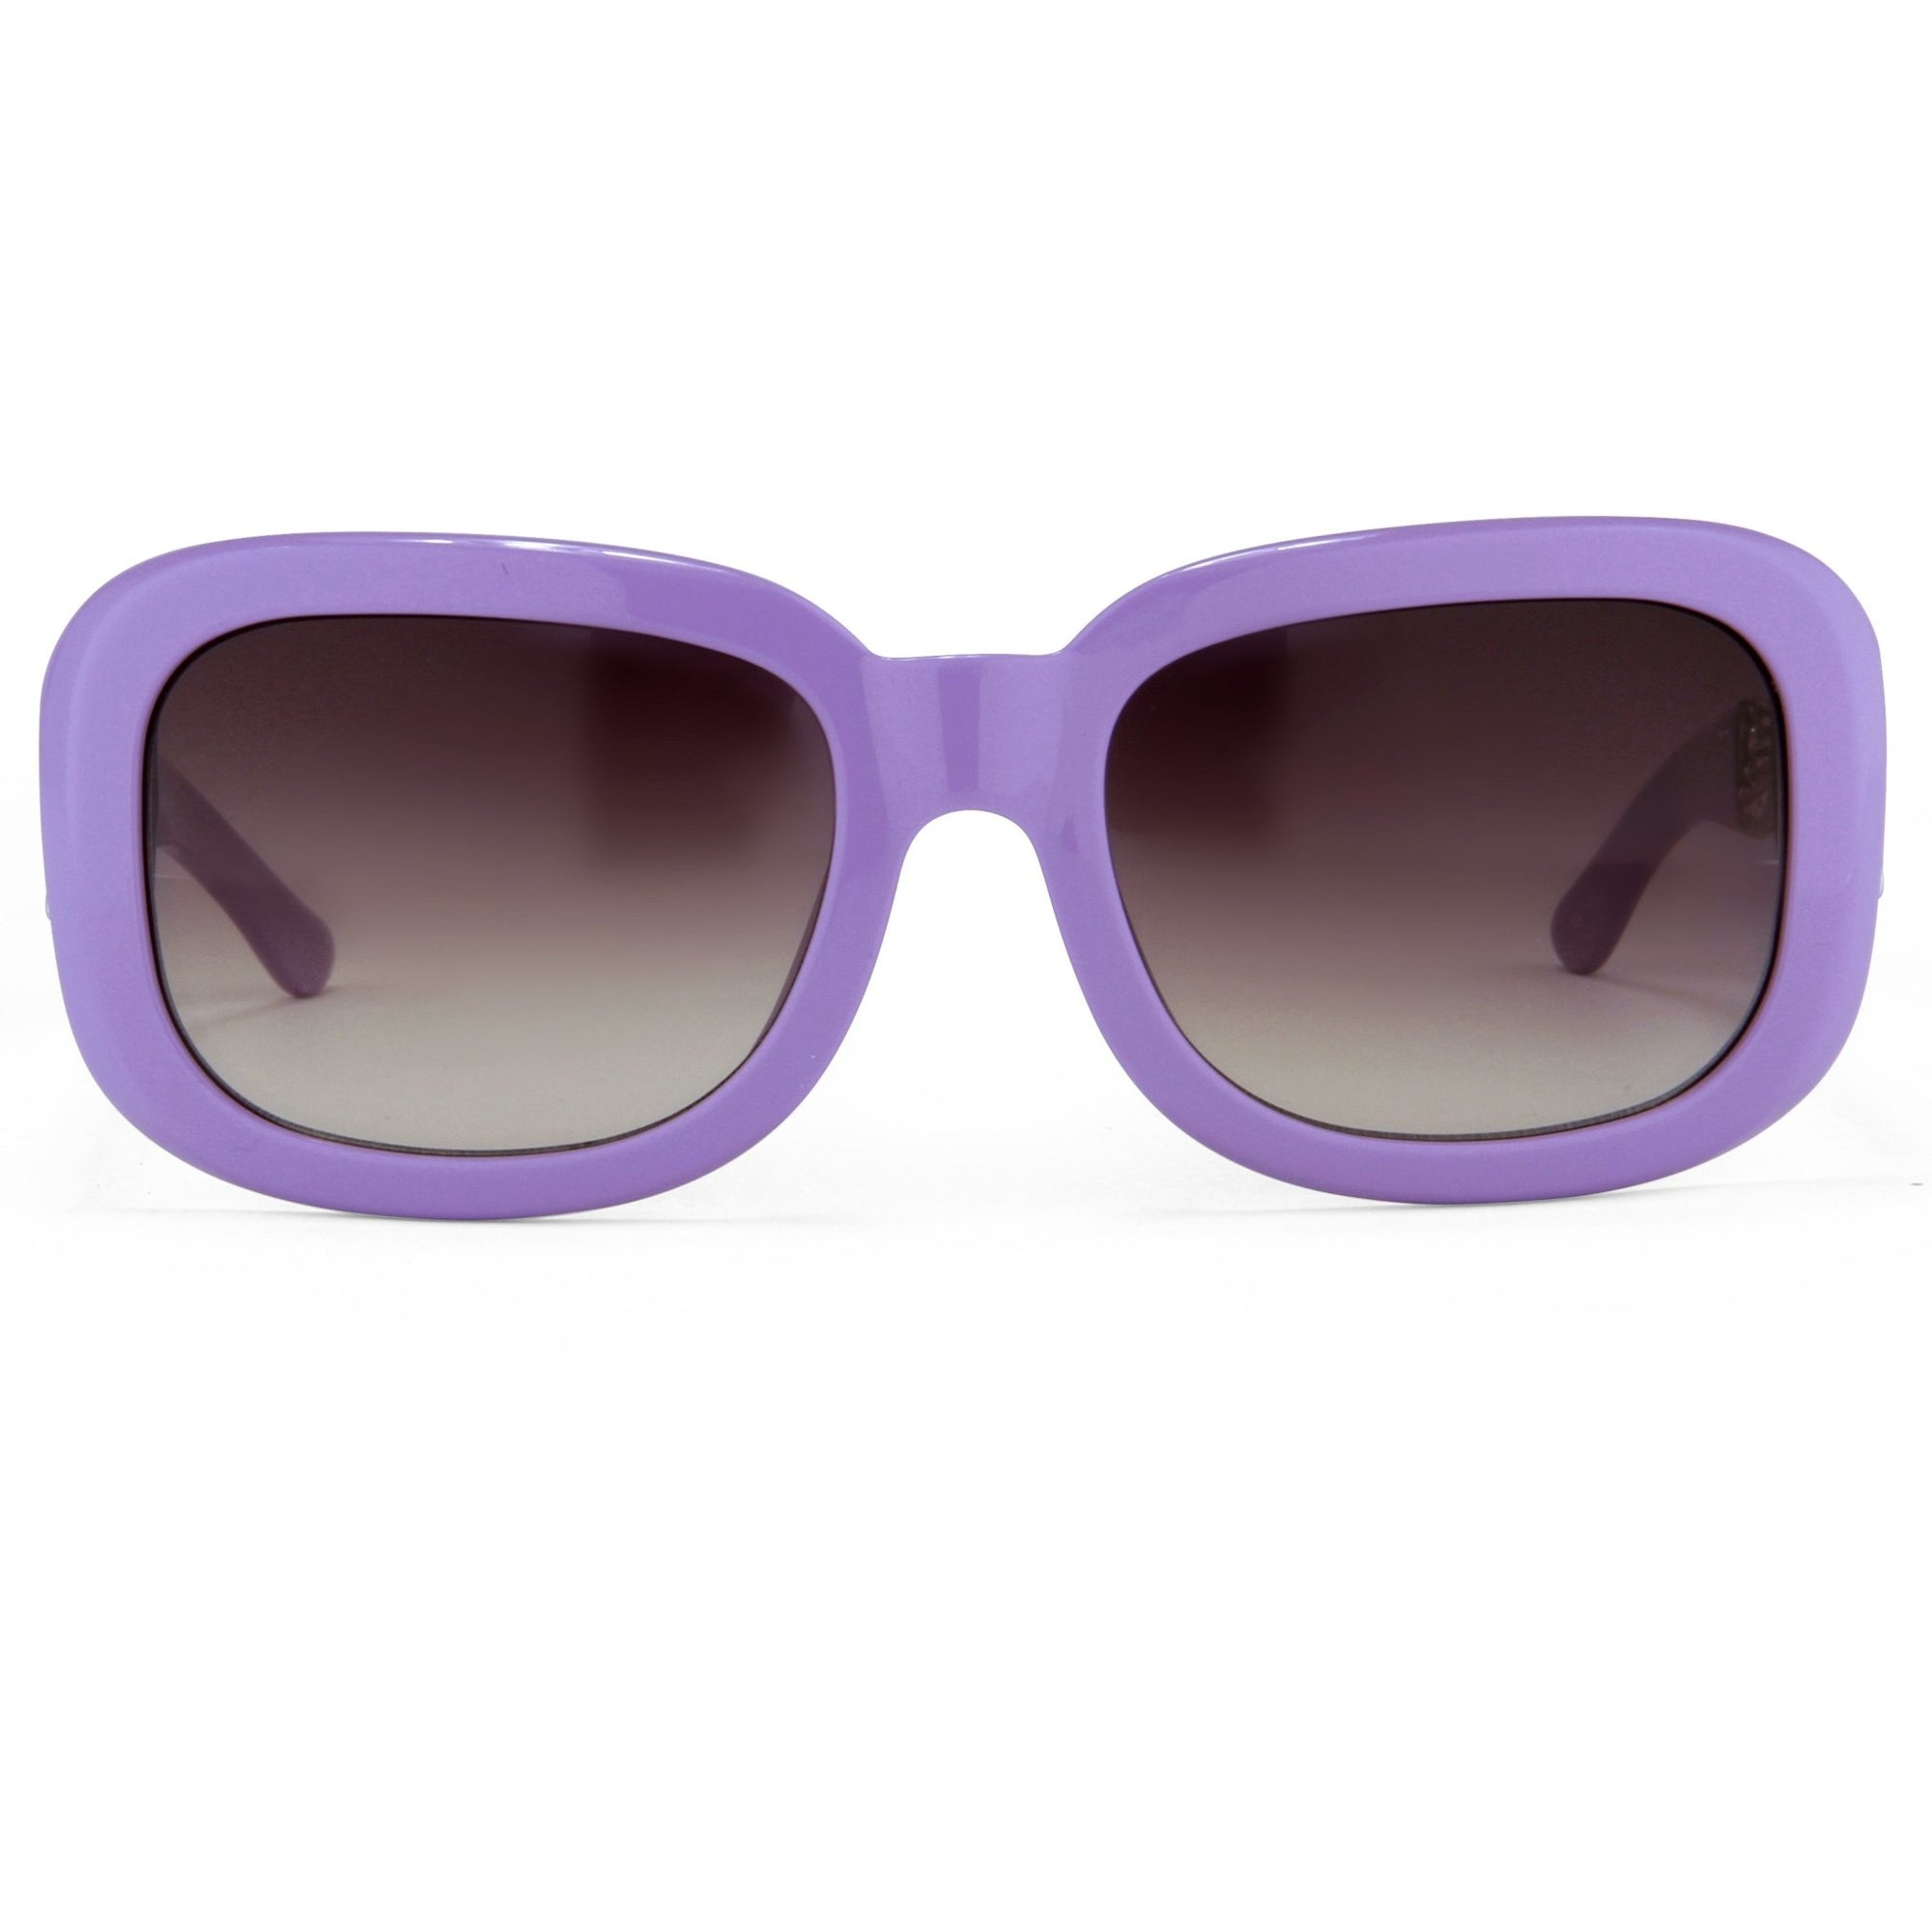 Prabal Gurung Sunglasses Women's Rectangle Purple Acetate CAT2 Grey Gradient Lenses PG13C4SUN - Watches & Crystals